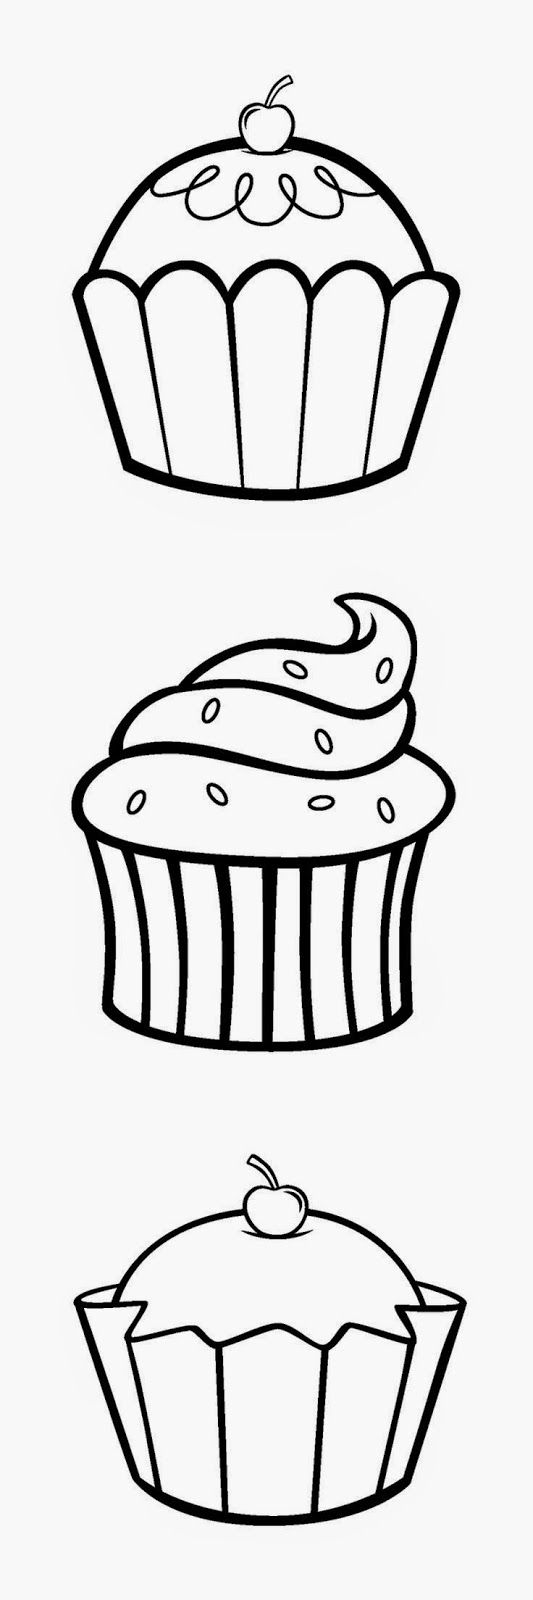 coloring pages cupcakes birthday cupcake coloring pages download and print for free cupcakes pages coloring